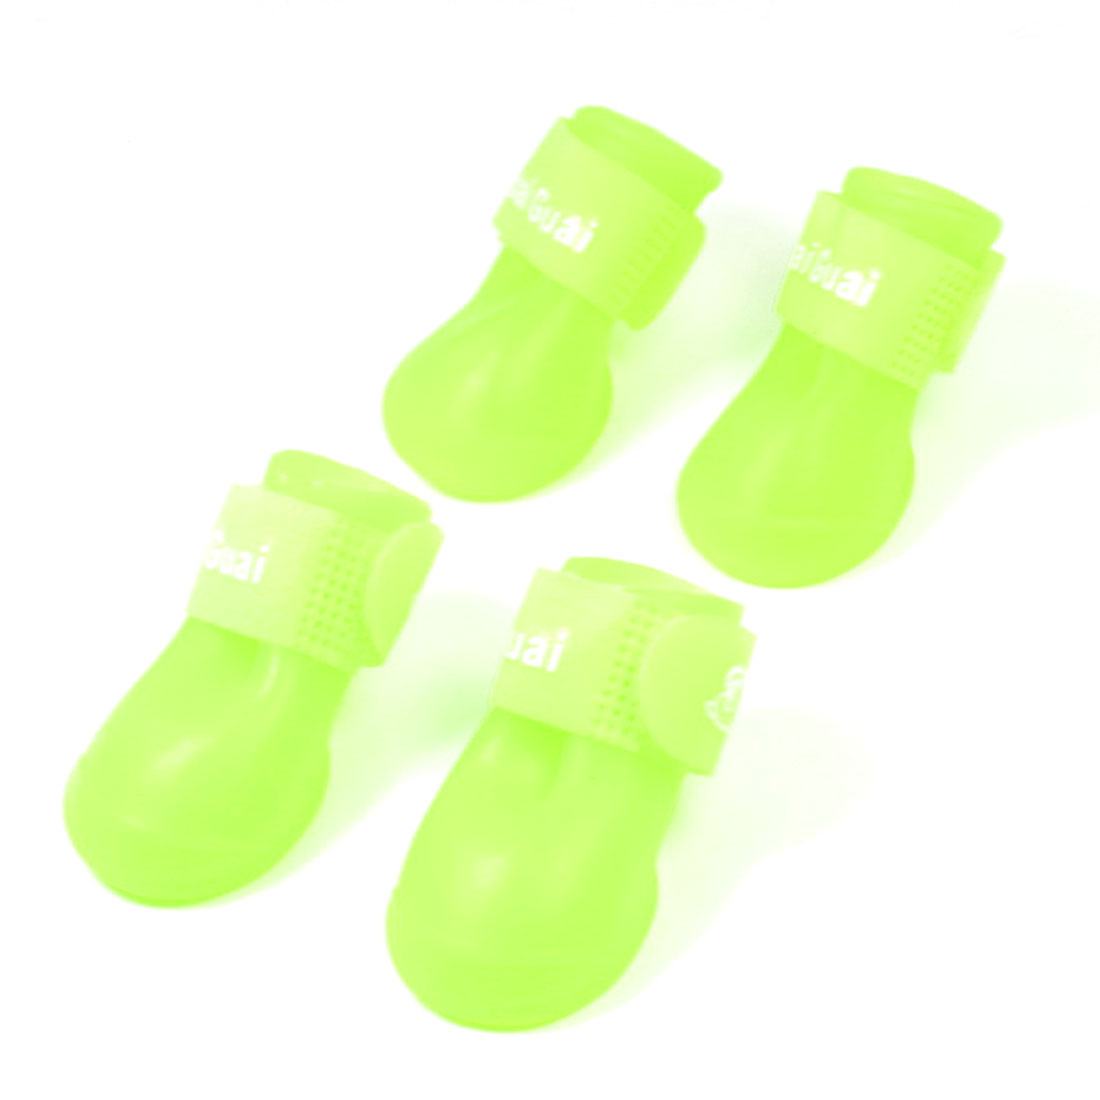 4pcs Pets Dogs Yellow Green Rubber Rain Boot Dog Paw Print Sole Rainshoes Size S